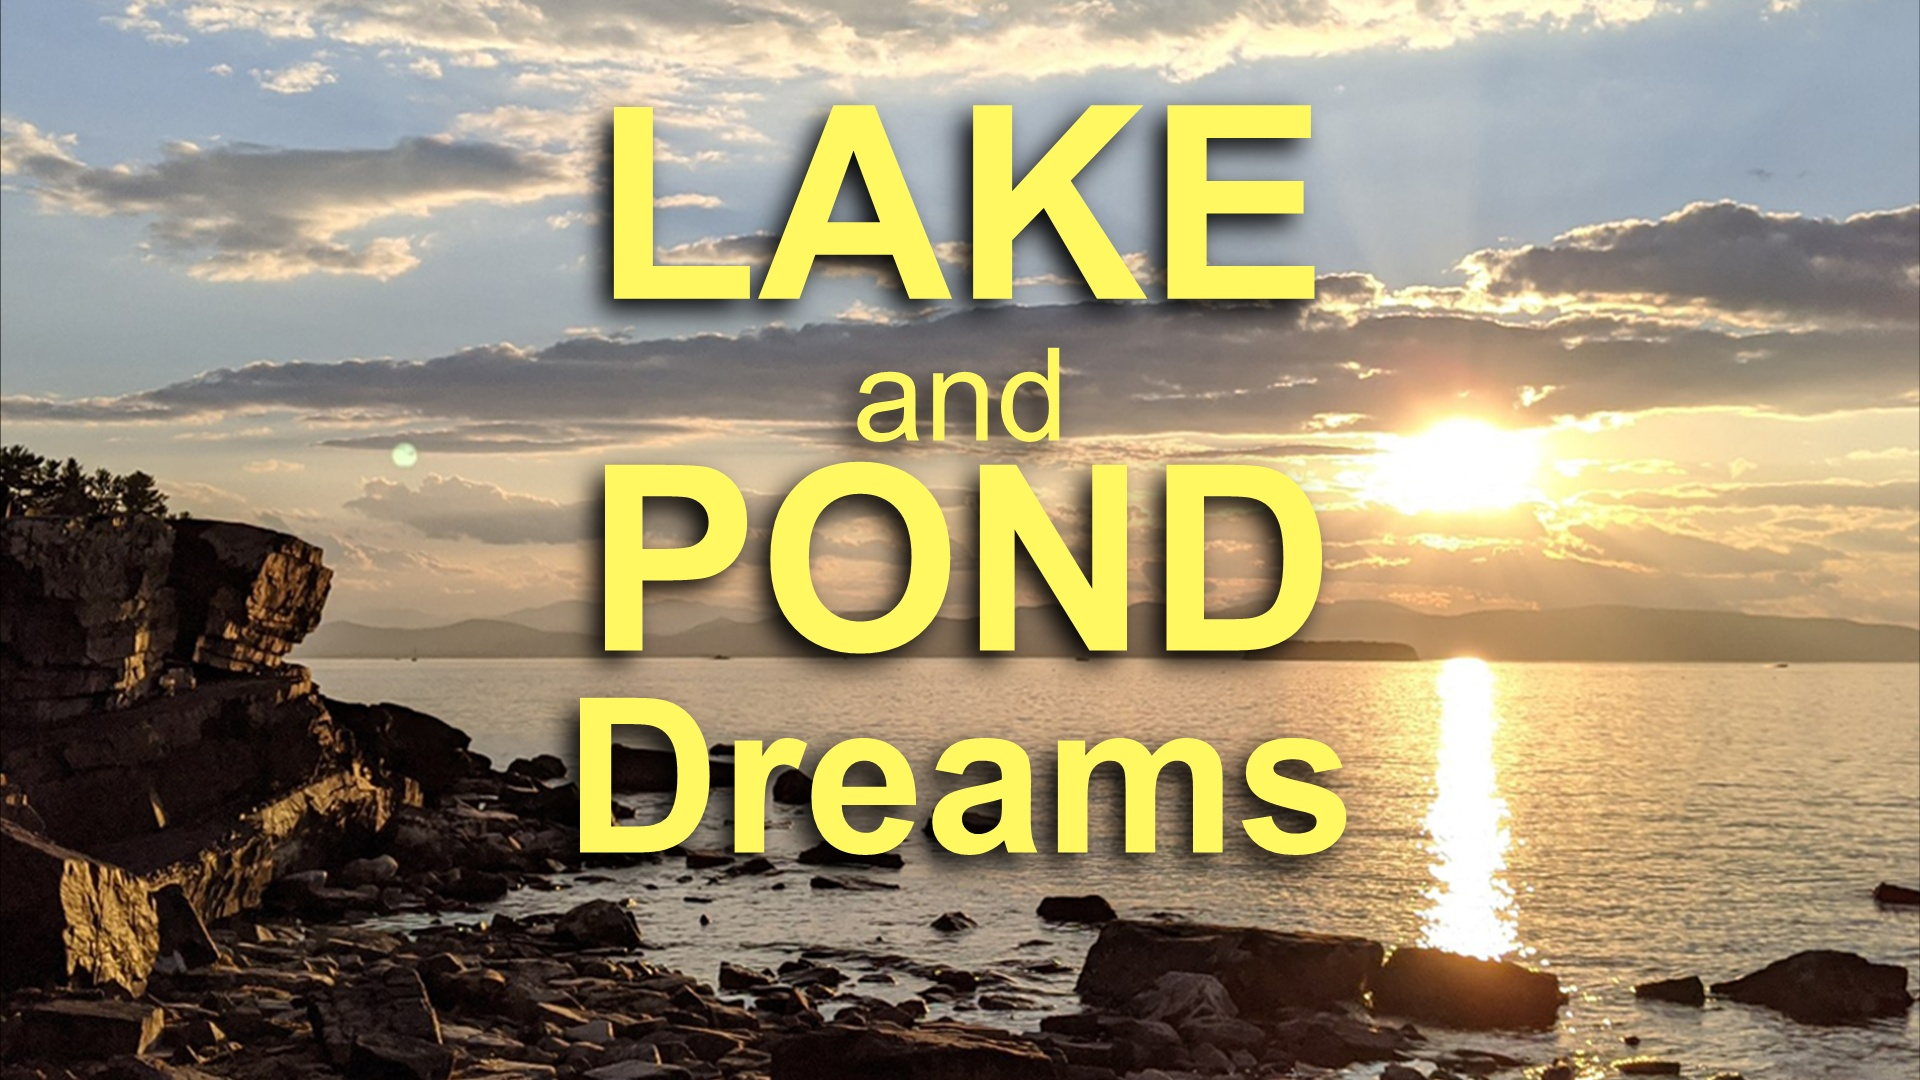 What does it mean if you see a lake in your dreams